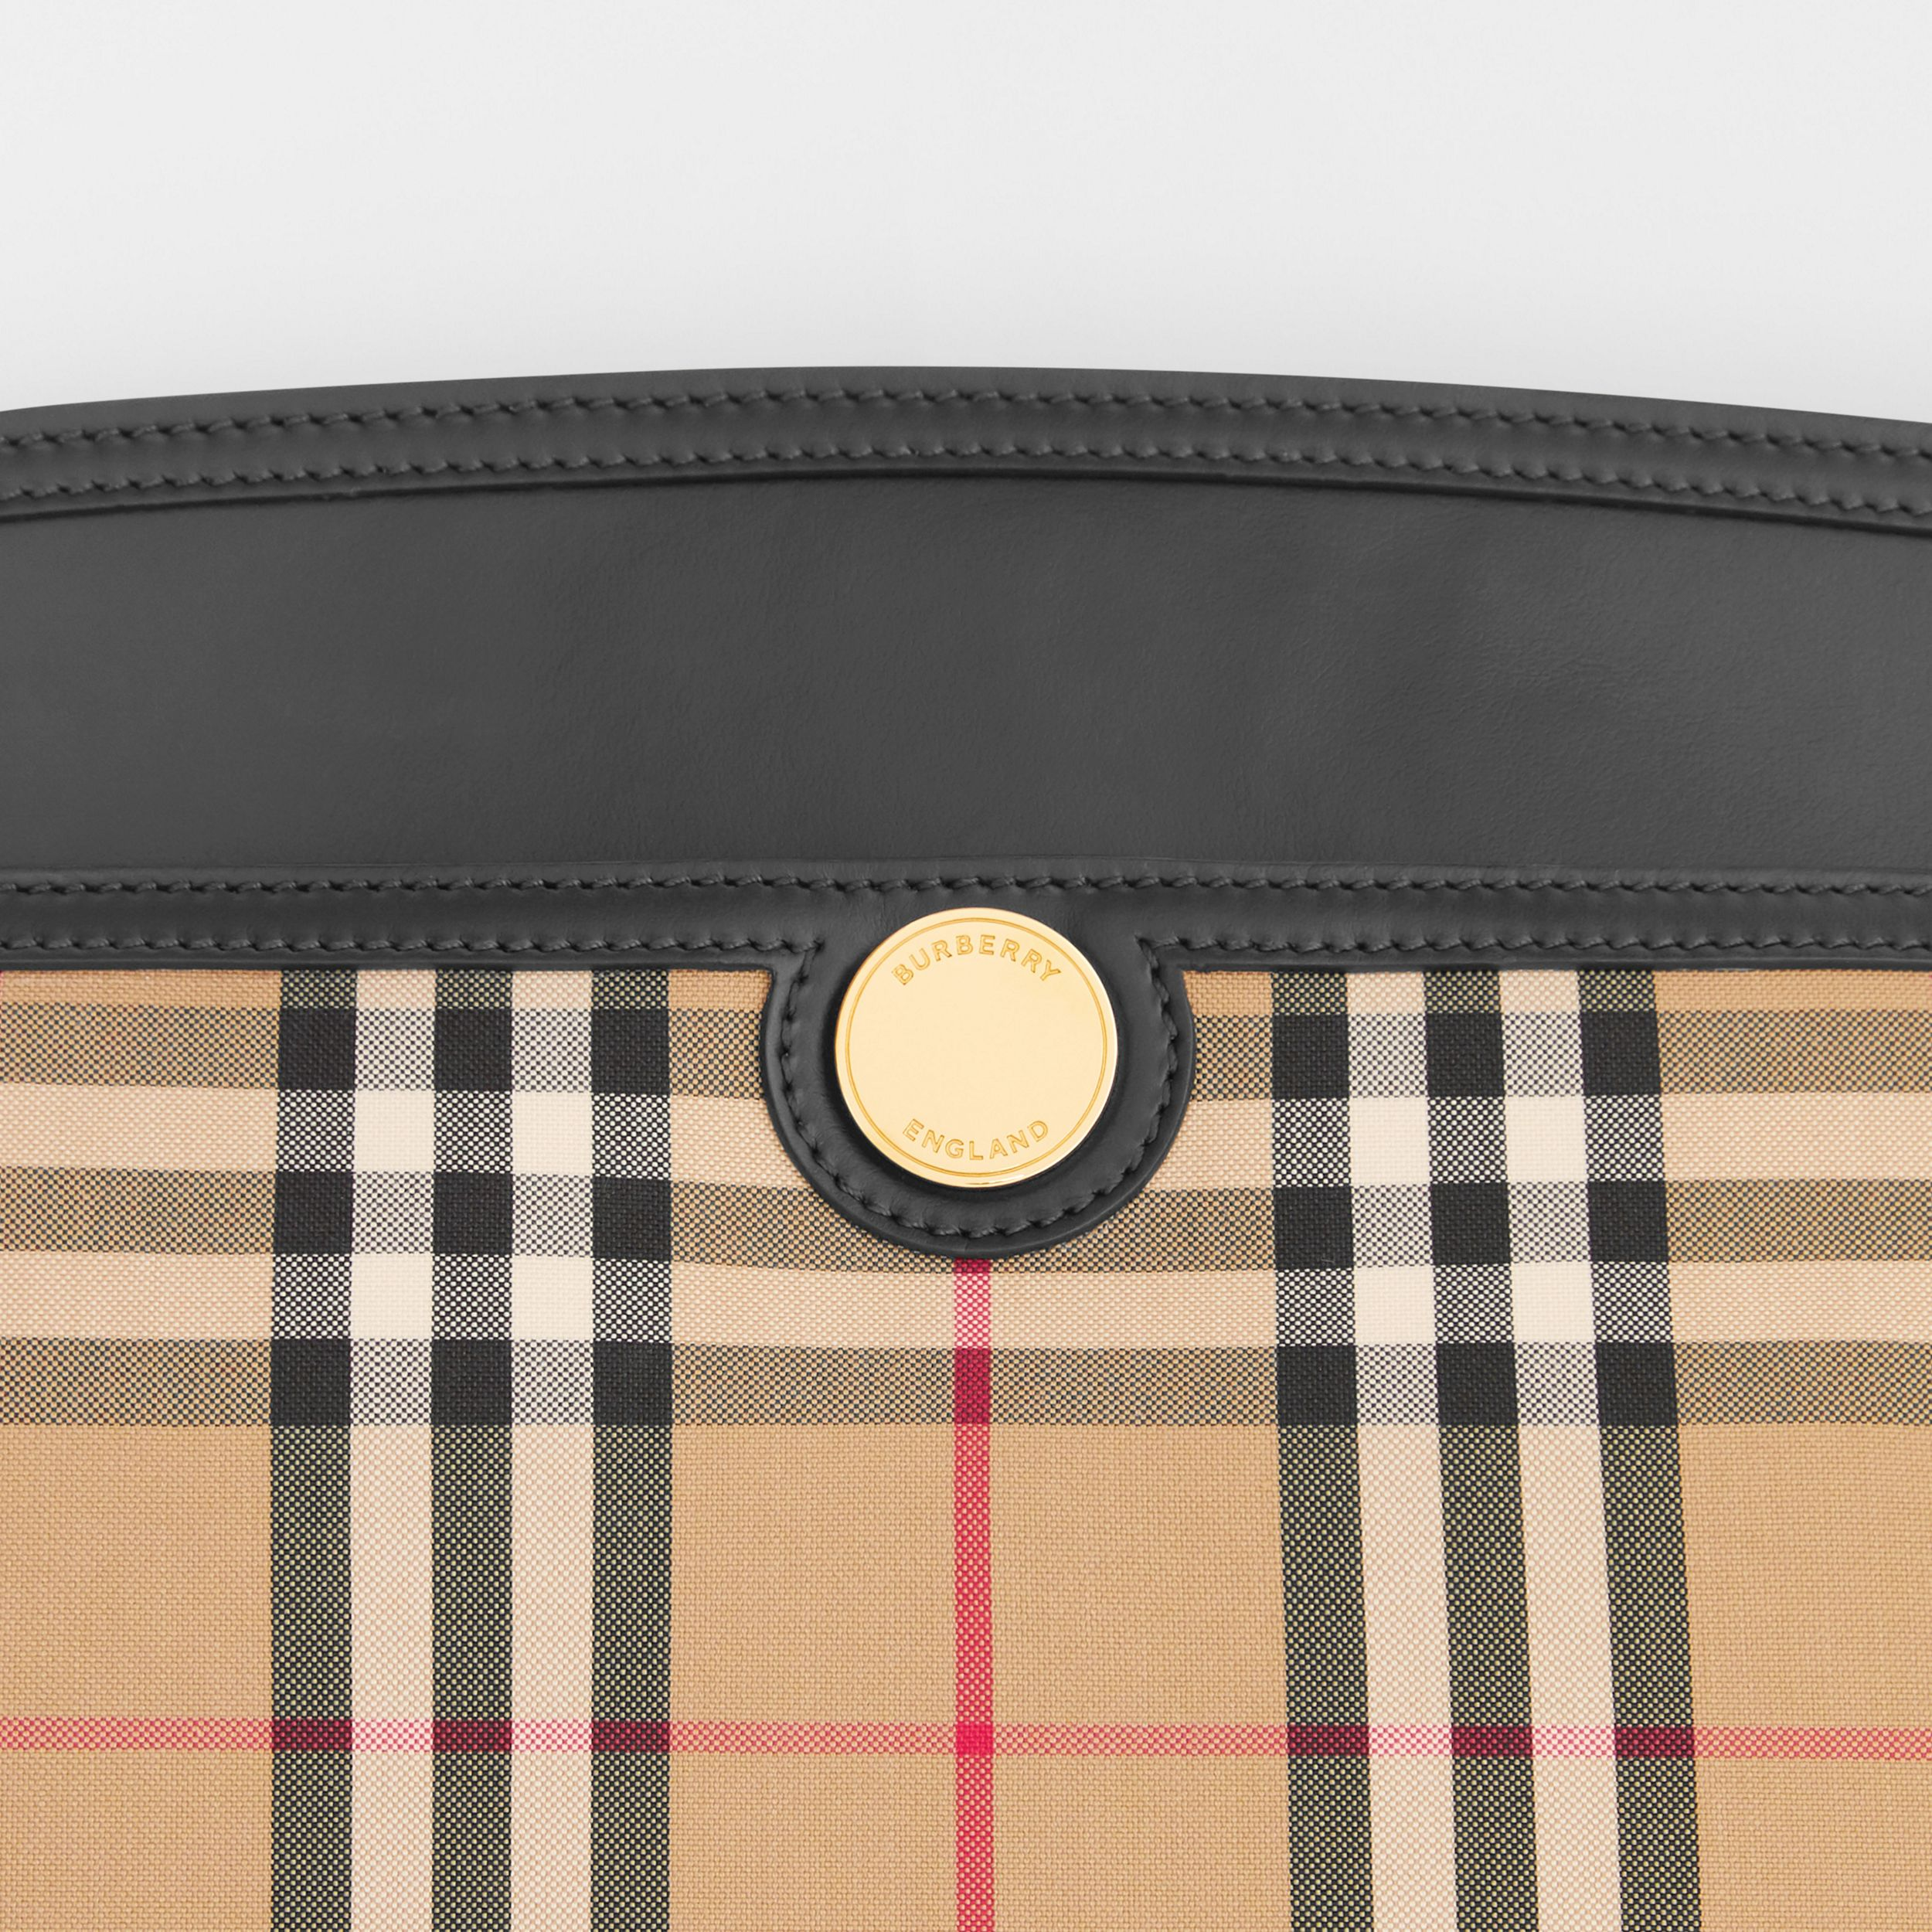 Vintage Check and Leather Society Clutch in Archive Beige - Women | Burberry Australia - 2